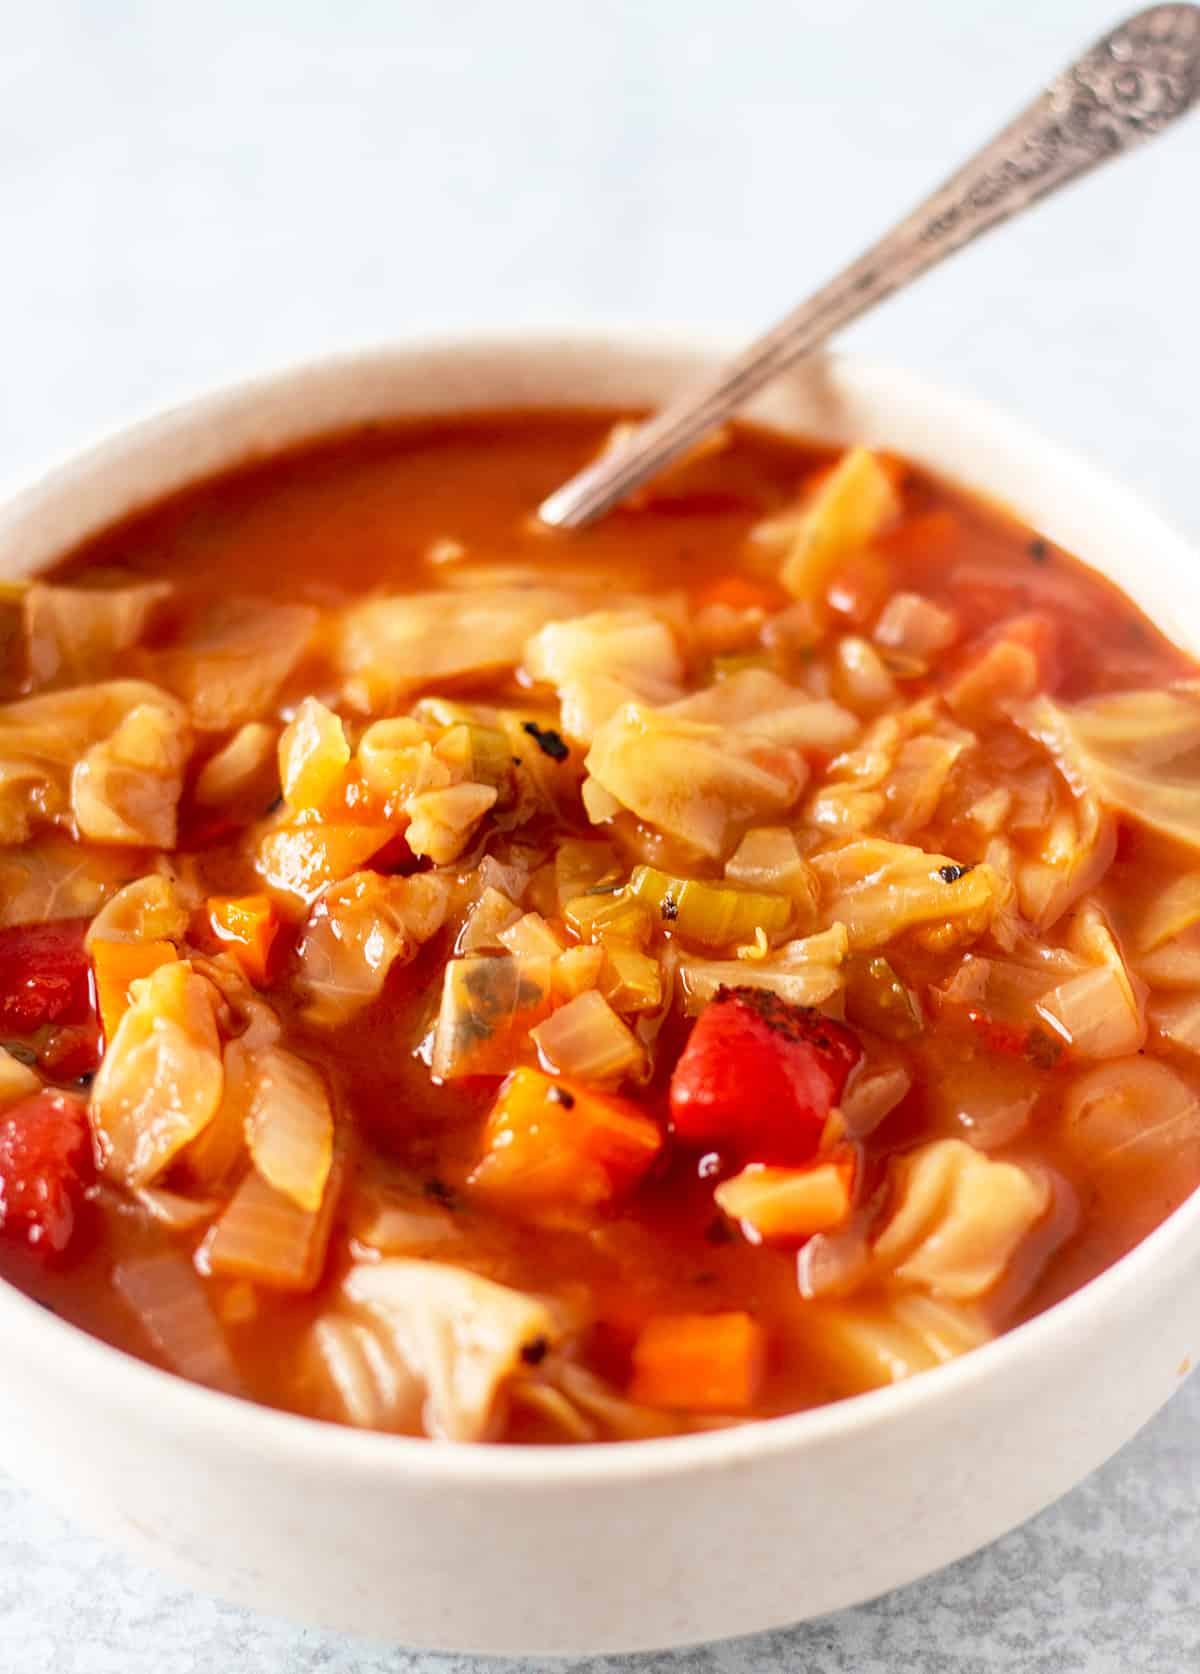 cabbage soup in a white serving bowl with a silver spoon